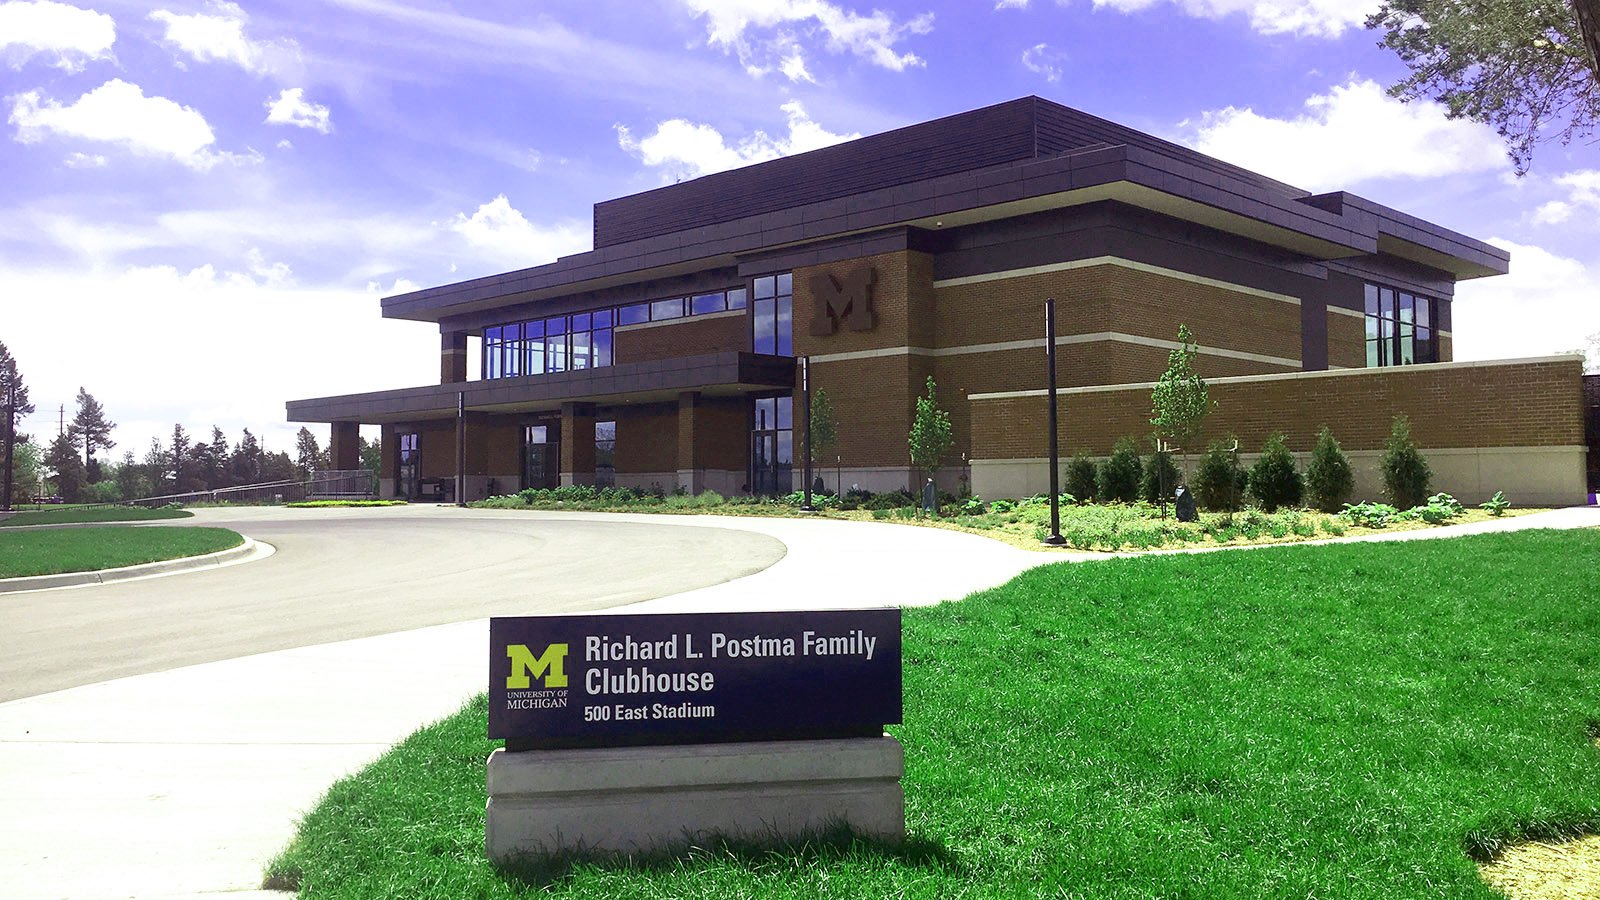 University of Michigan Gold Club Clubhouse